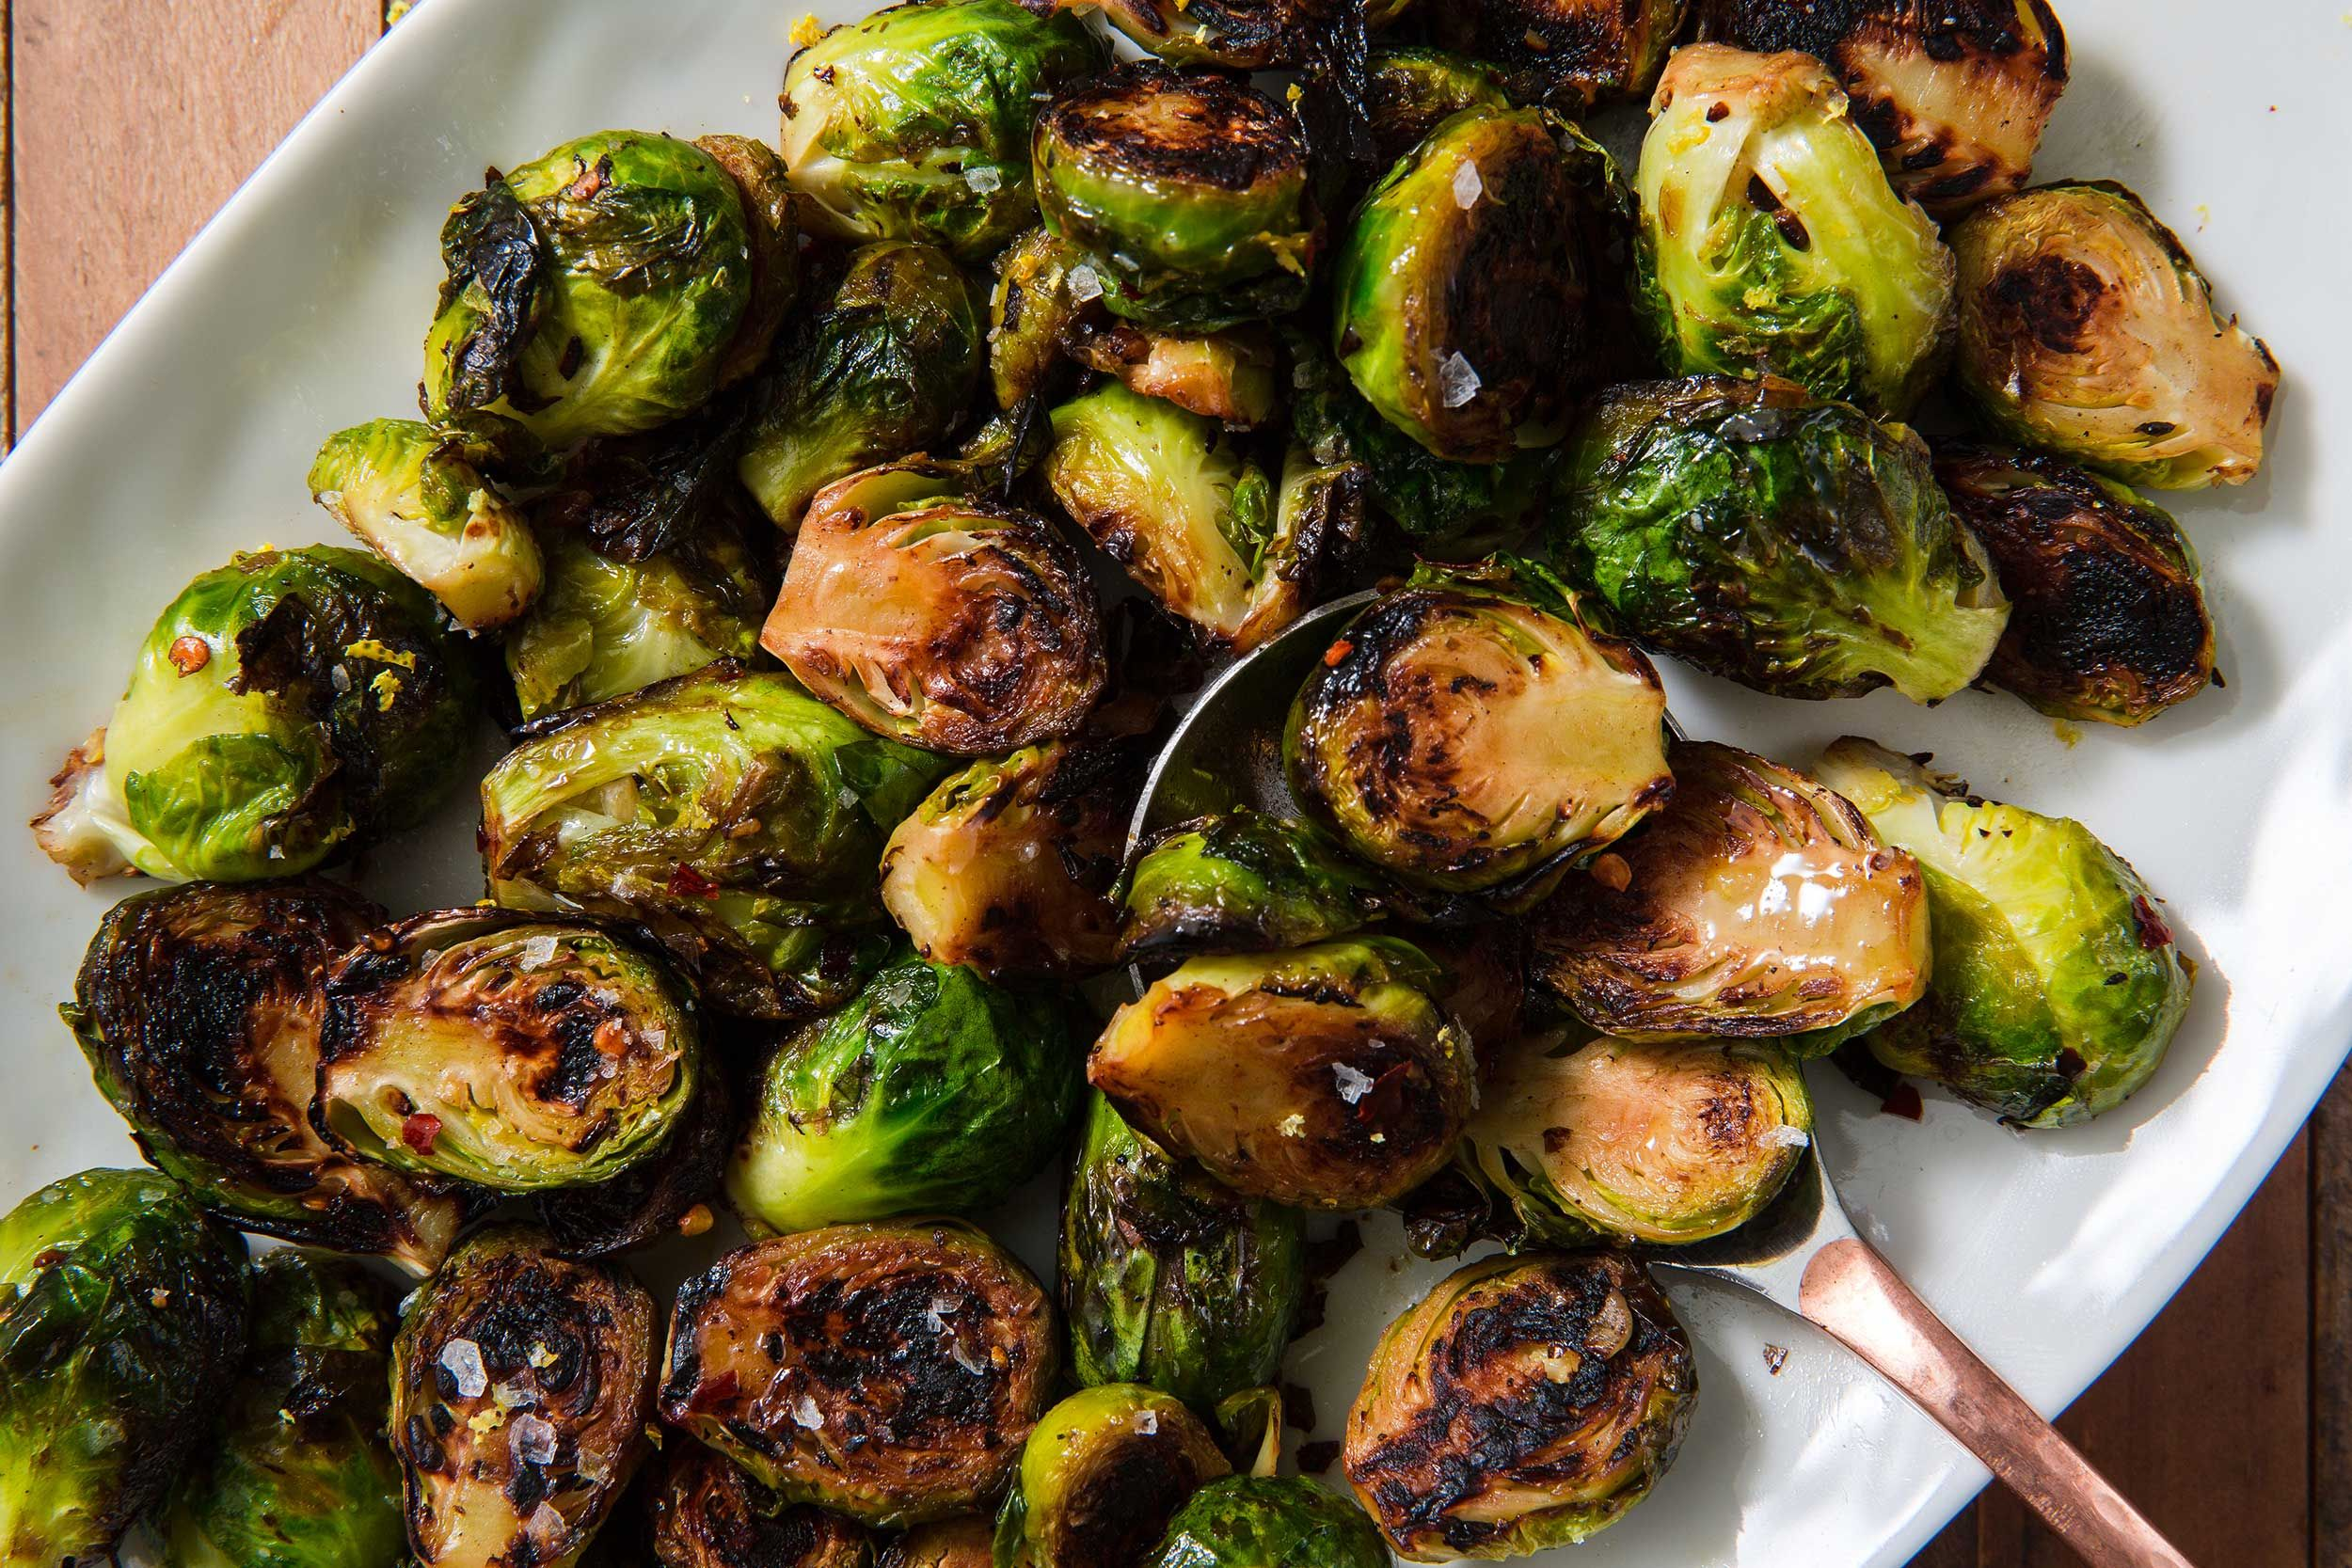 Best Sautéed Brussels Sprouts Recipe - How To Make Sautéed Brussels Sprouts